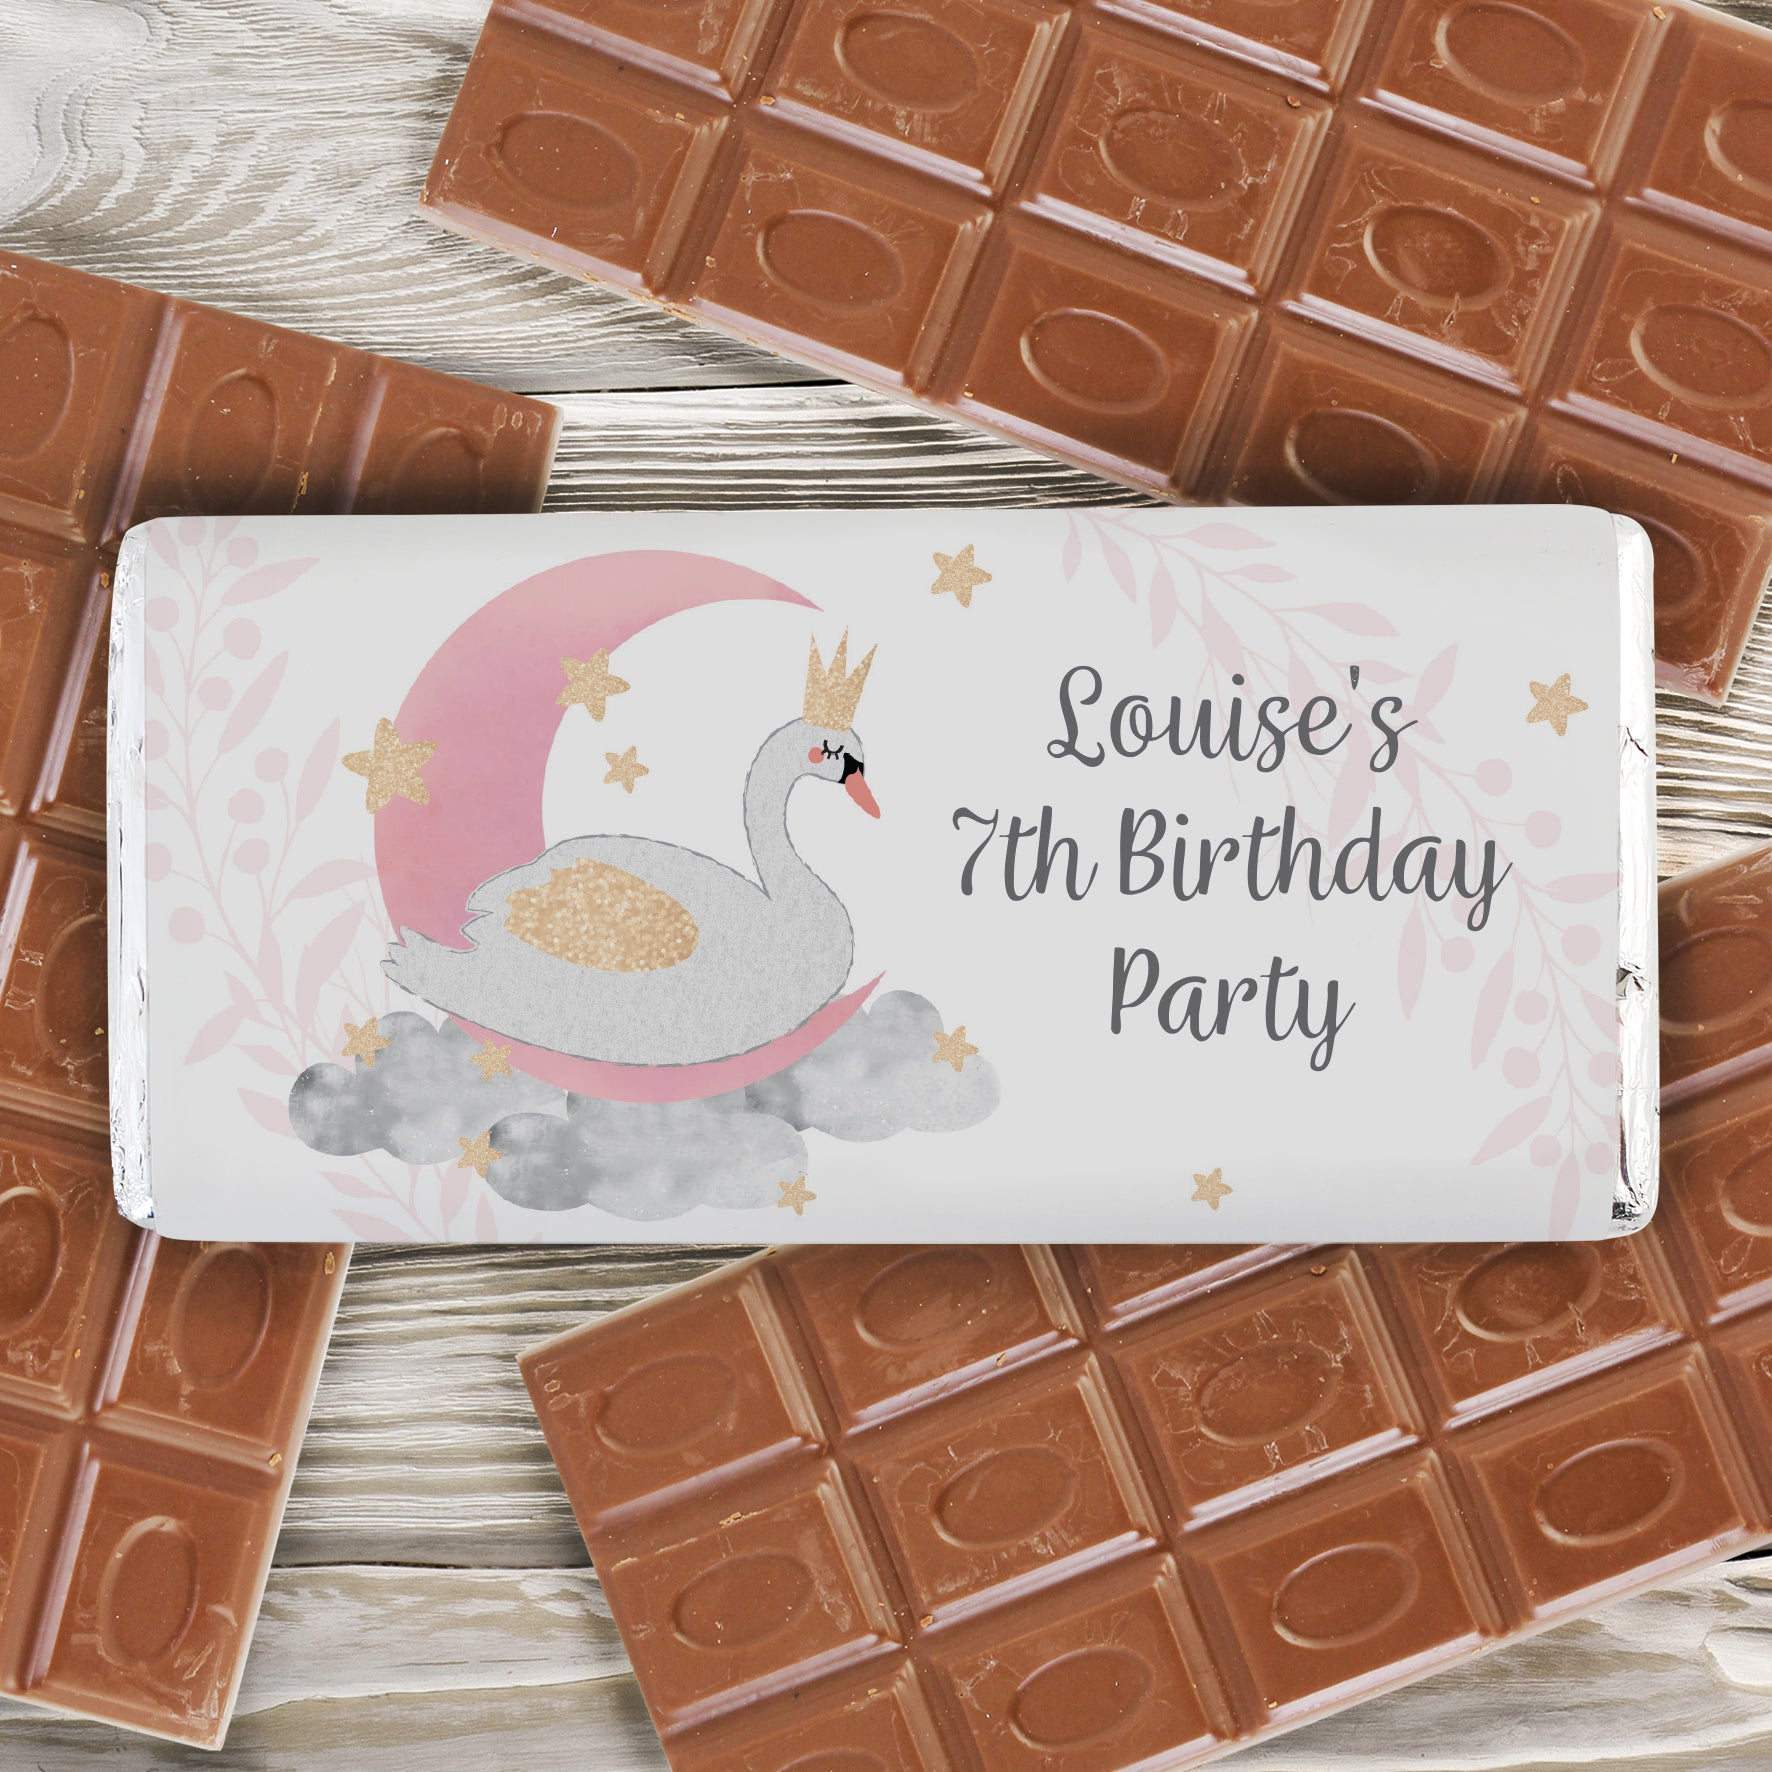 Personalised Swan Lake Milk Chocolate Bar, Food, Beverages & Tobacco by Low Cost Gifts